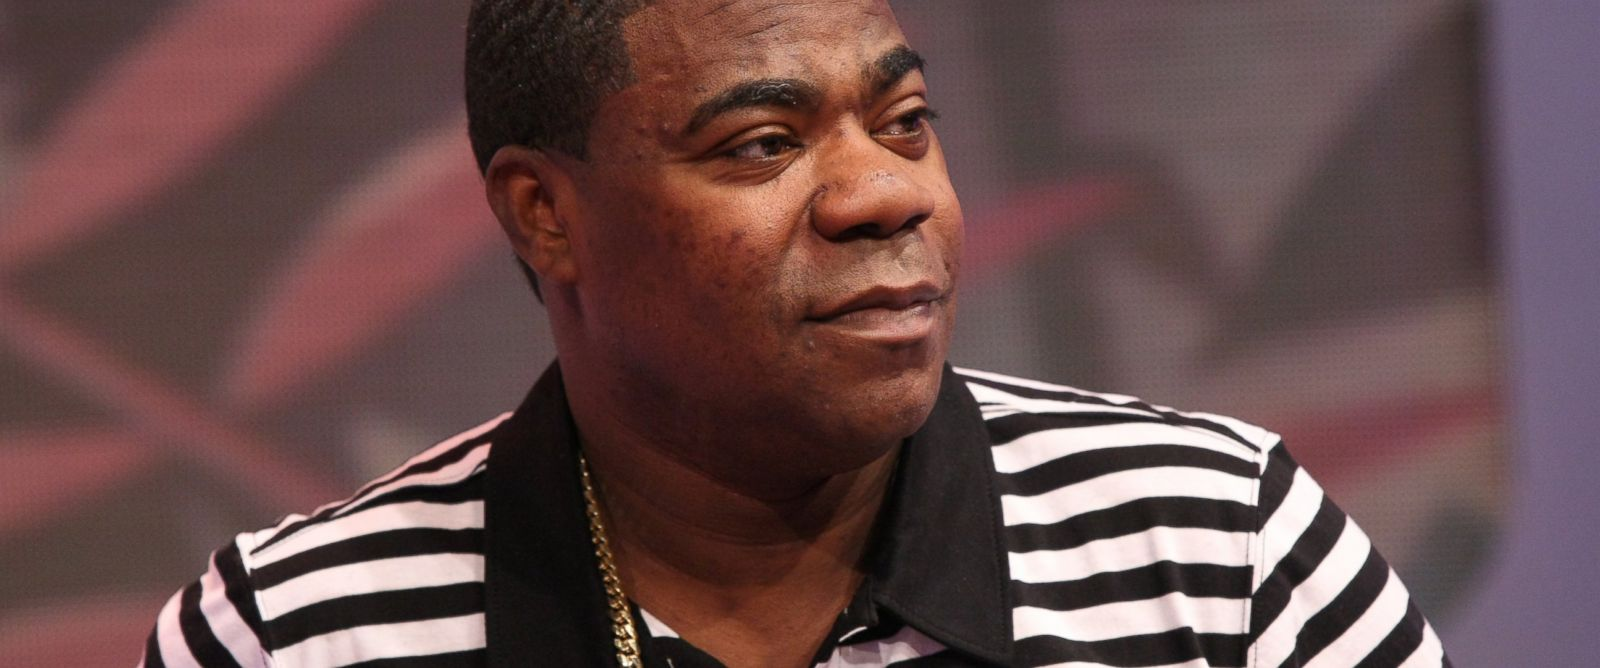 PHOTO: Actor Tracy Morgan visits 106 & Park at BET studio on April 16, 2014 in New York City.